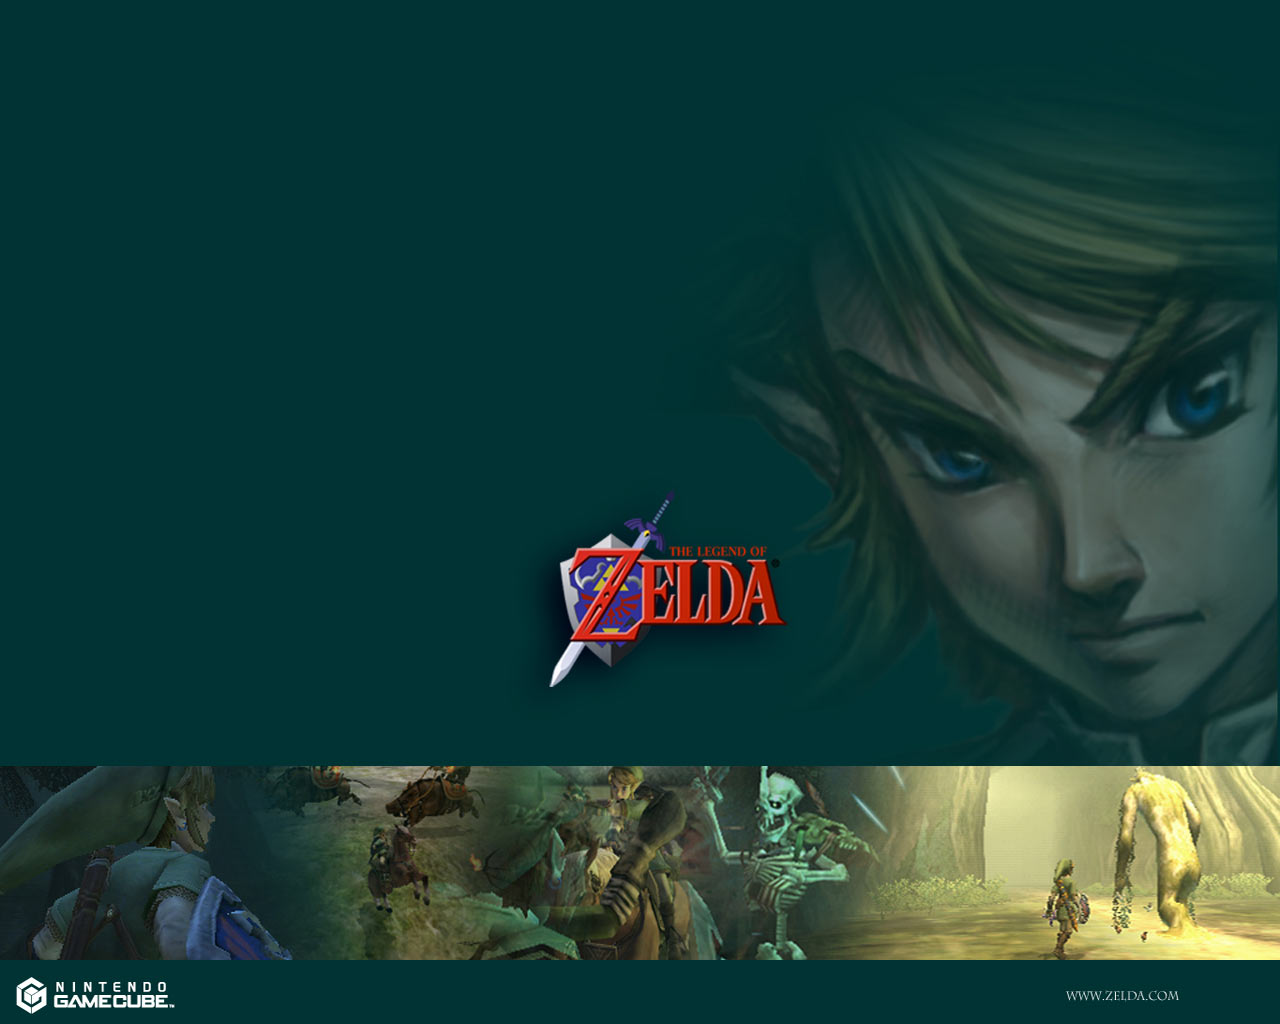 Zelda   The Legend of Zelda Twilight Princess 1280x1024